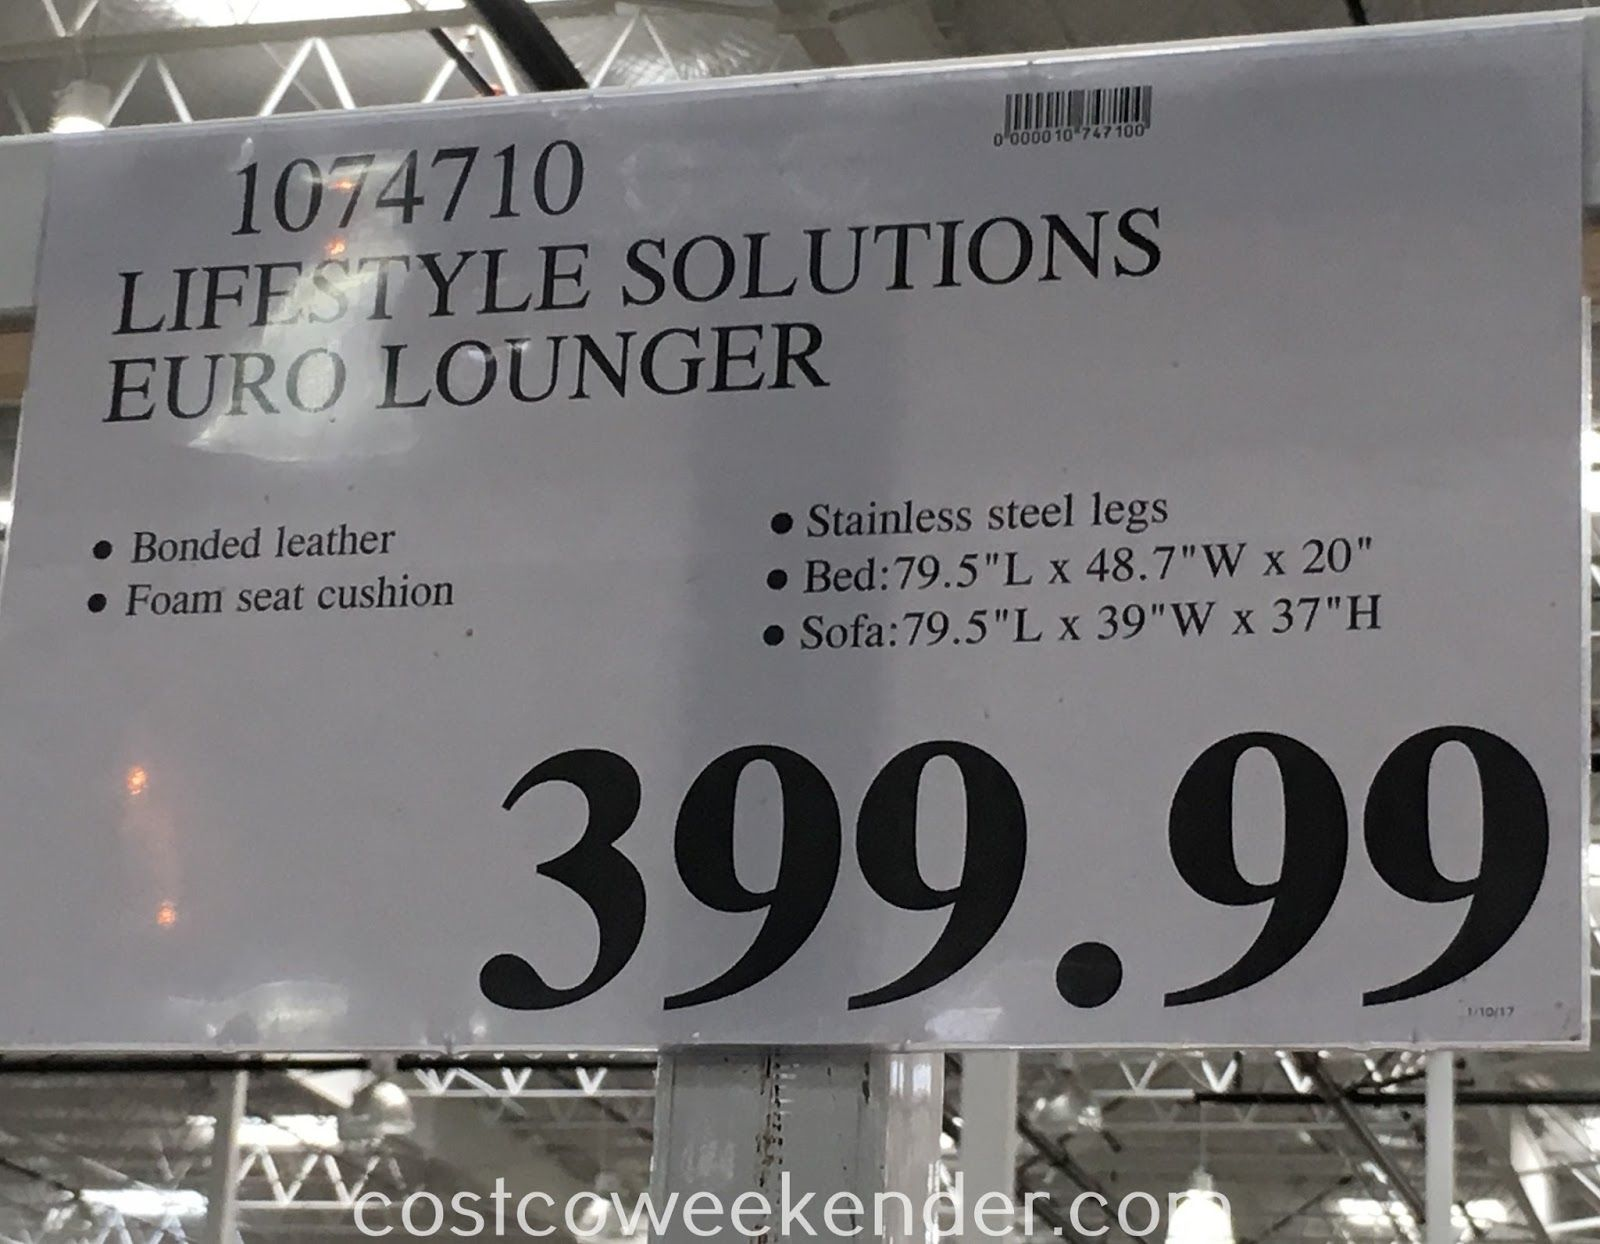 Lifestyle Solutions Euro Lounger 1074710 At Costco